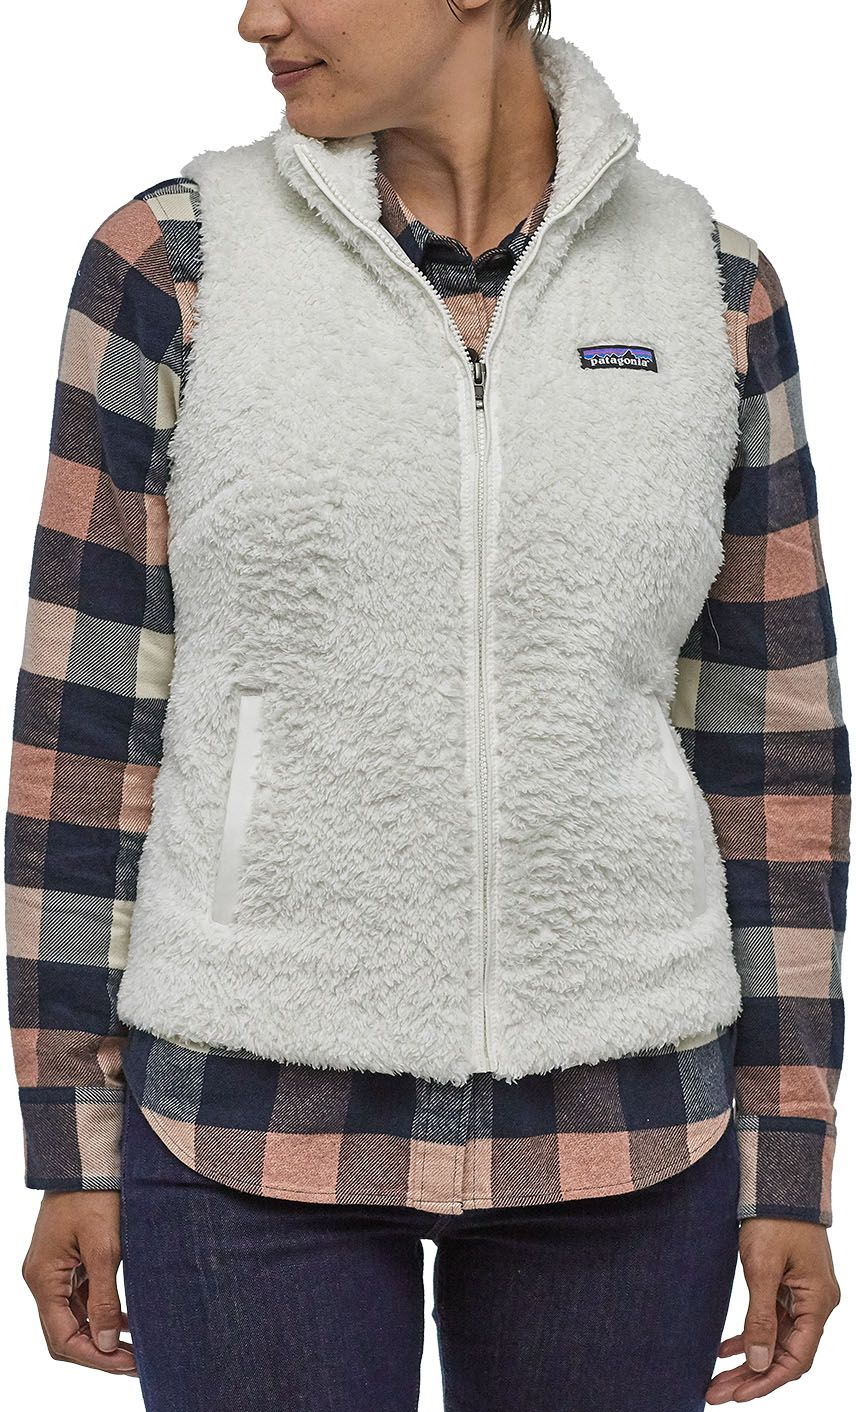 Women's fleece jackets patagonia